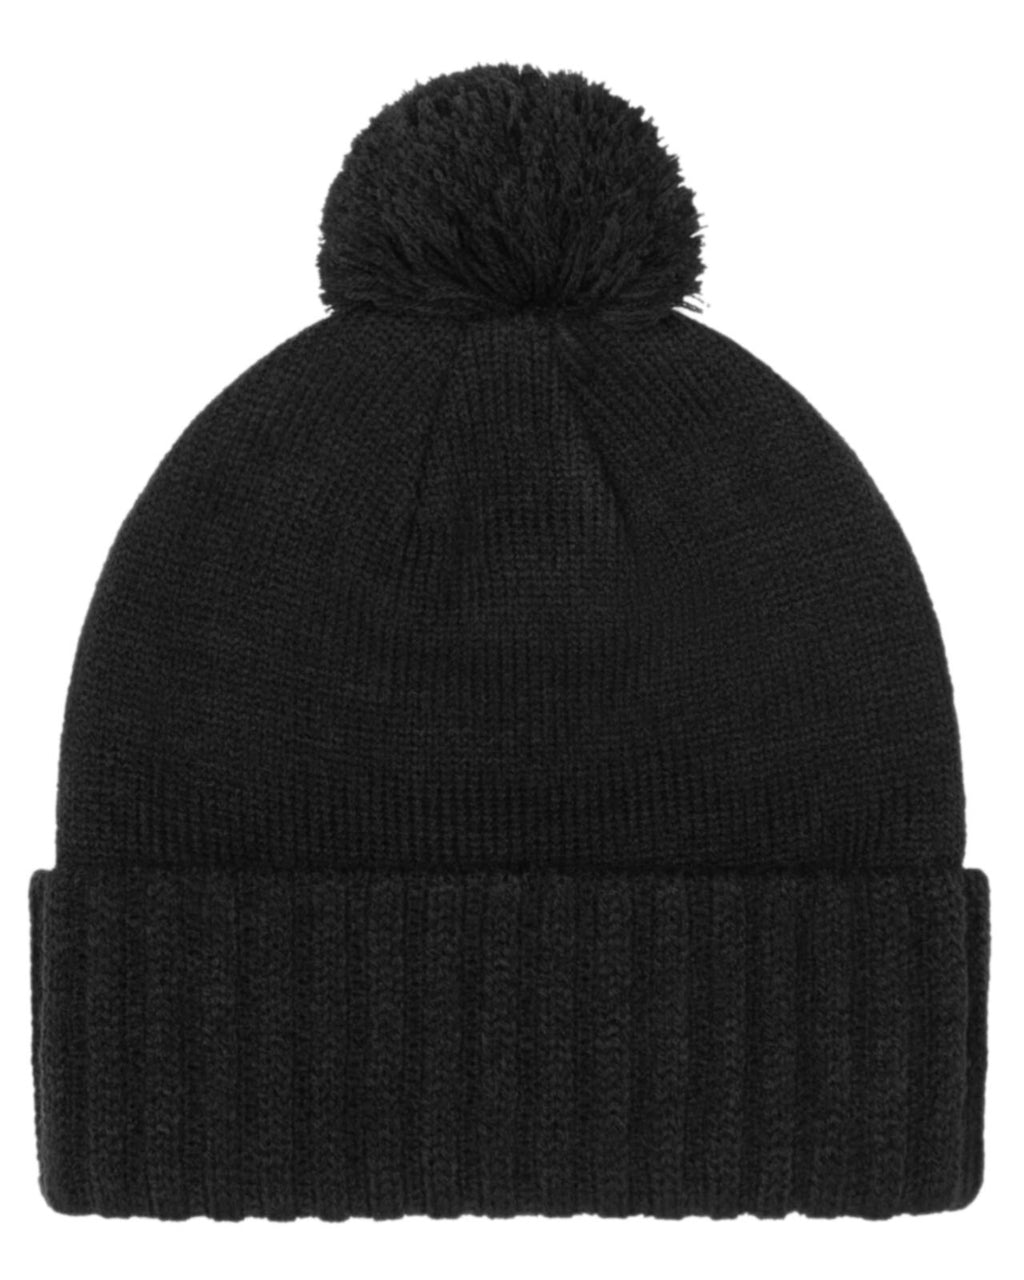 Lyle & Scott Bobble Beanie Hat Black